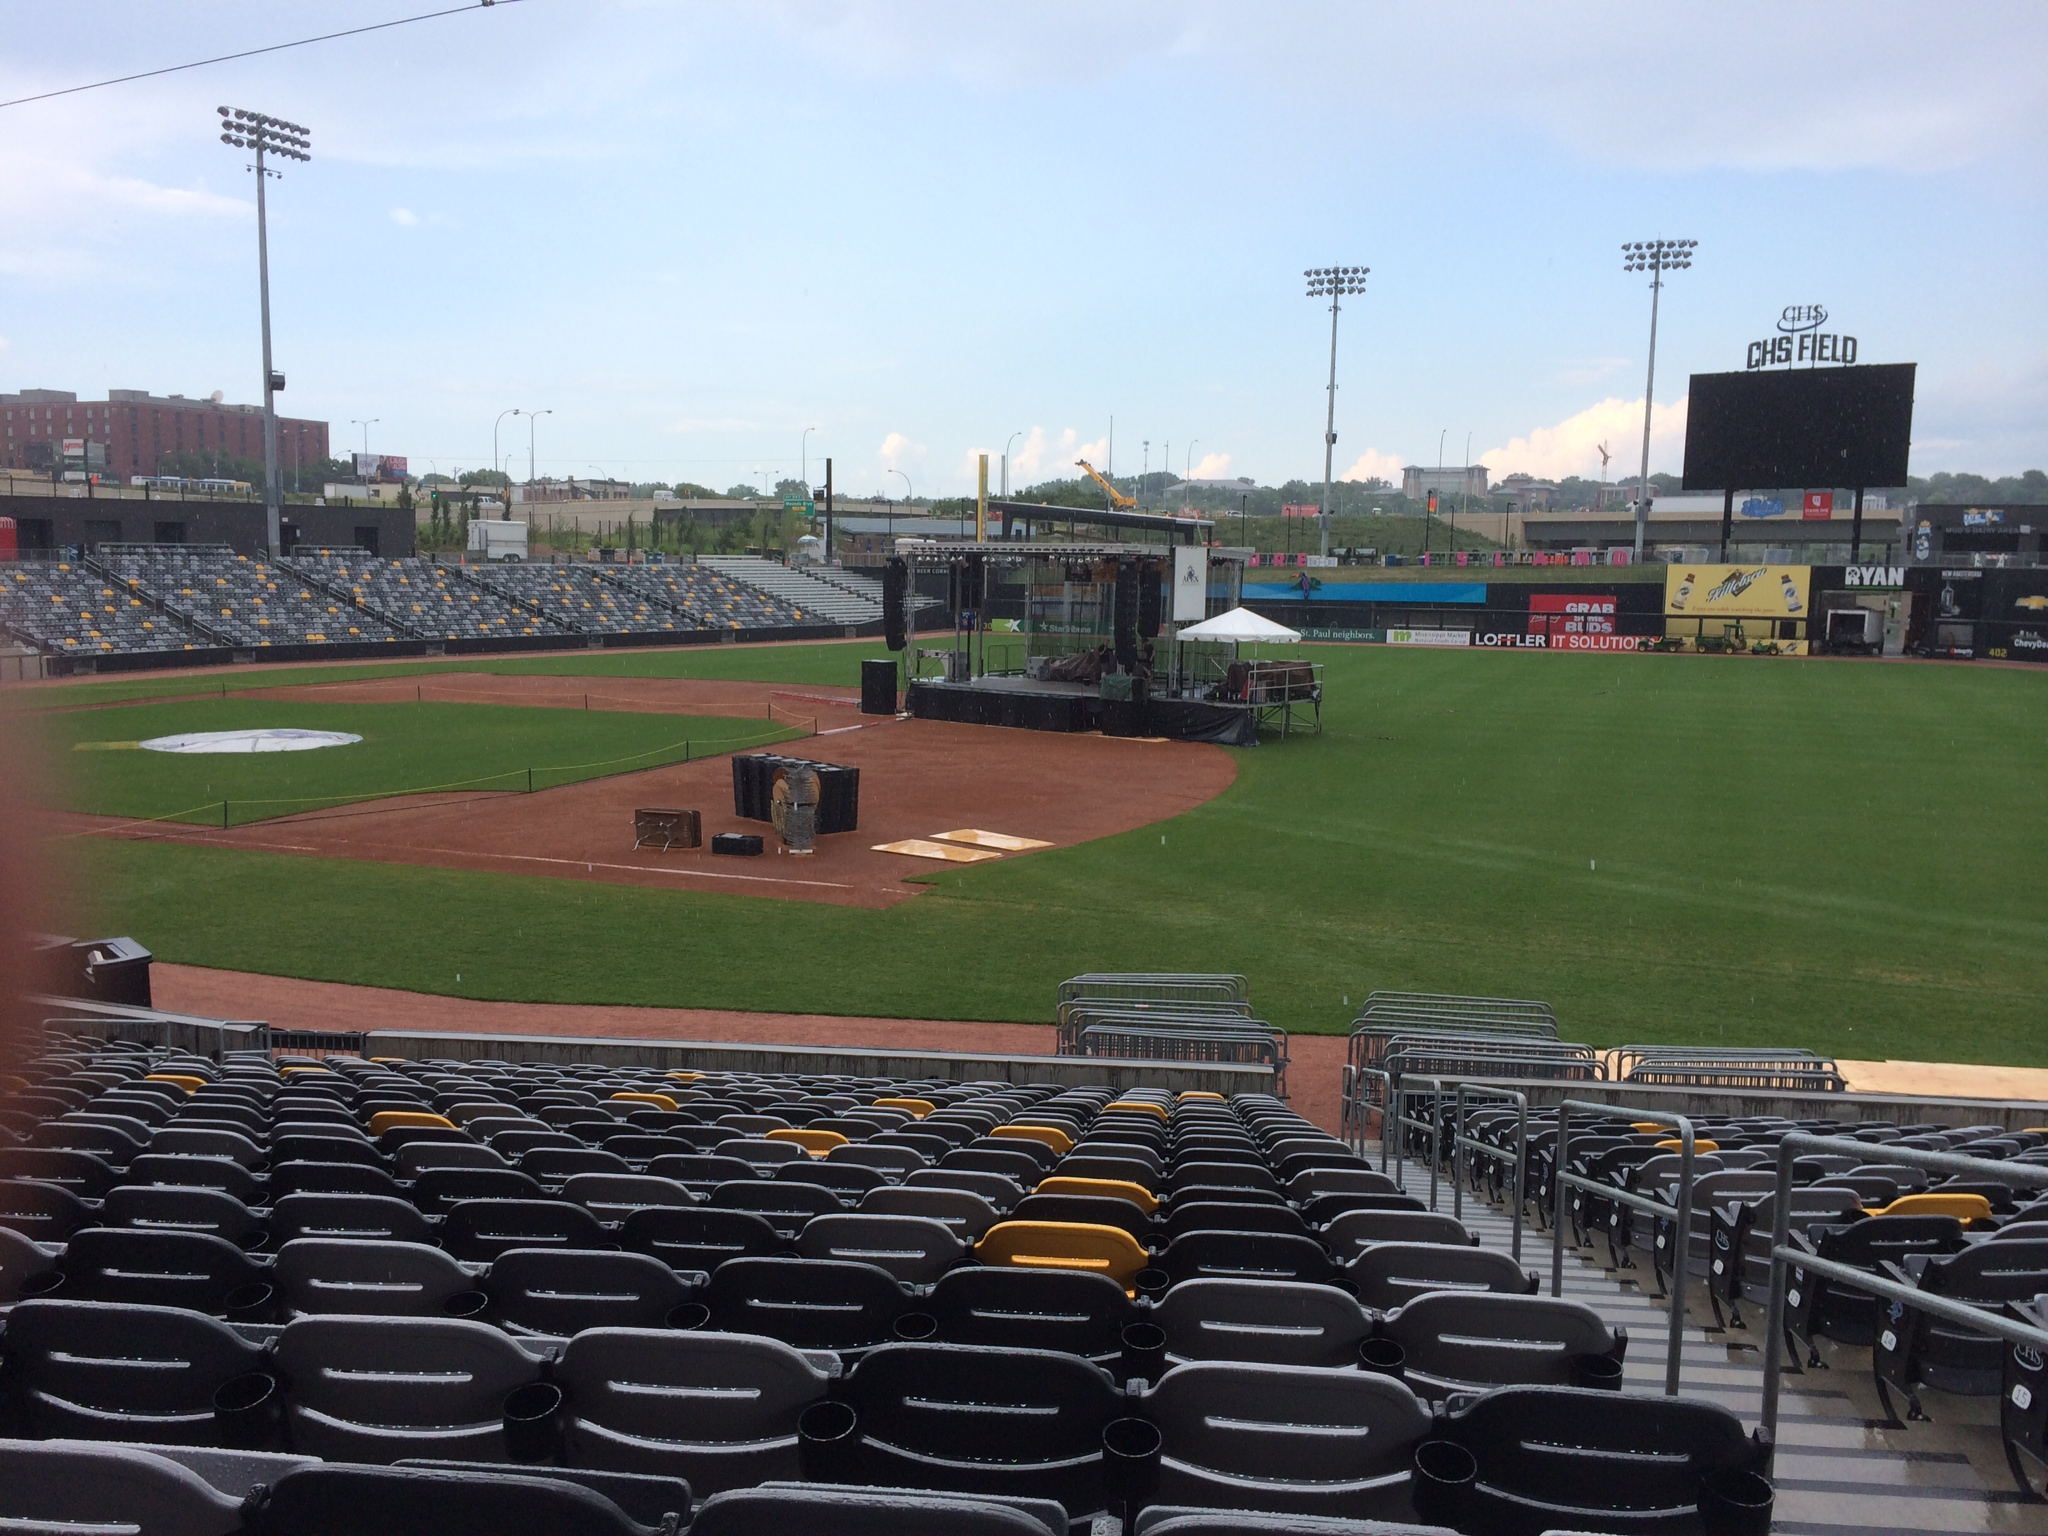 Ready for the show - Twin Cities Jazz Fest at CHS Field